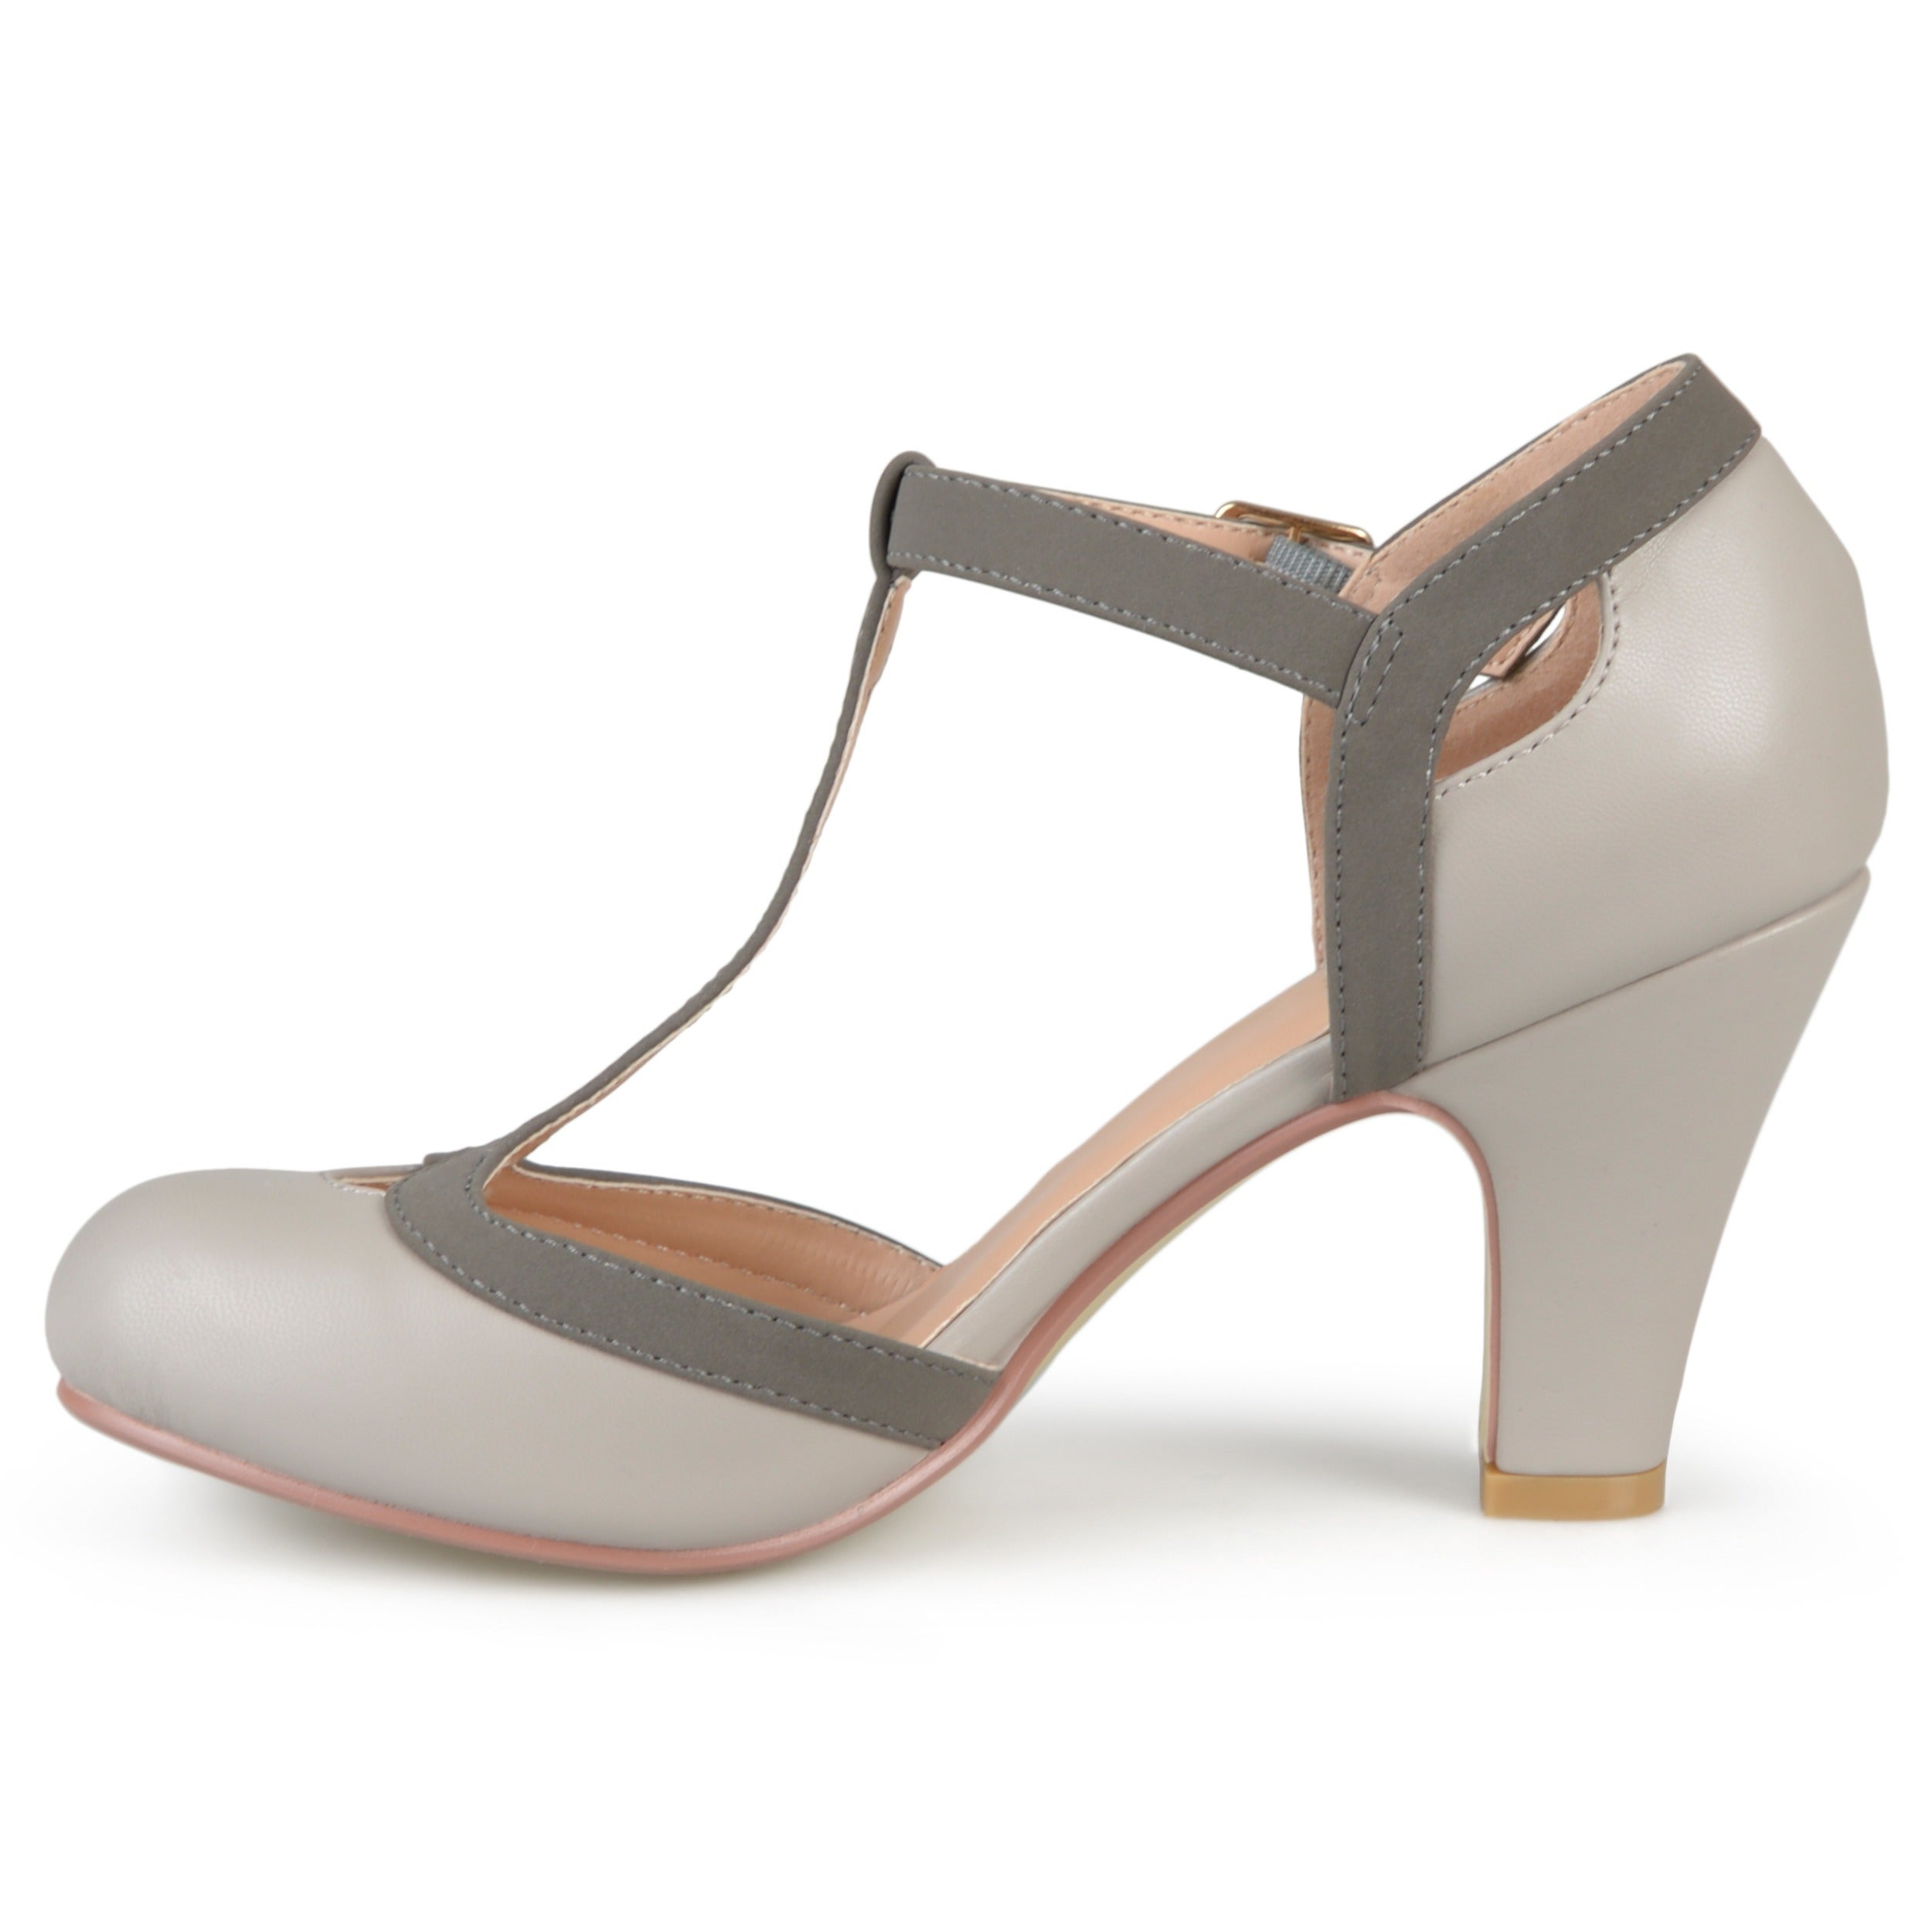 7ce8c5c8b Shop Journee Collection Women's 'Olina' T-strap Round Toe Mary Jane Pumps - Free  Shipping On Orders Over $45 - Overstock - 12073916